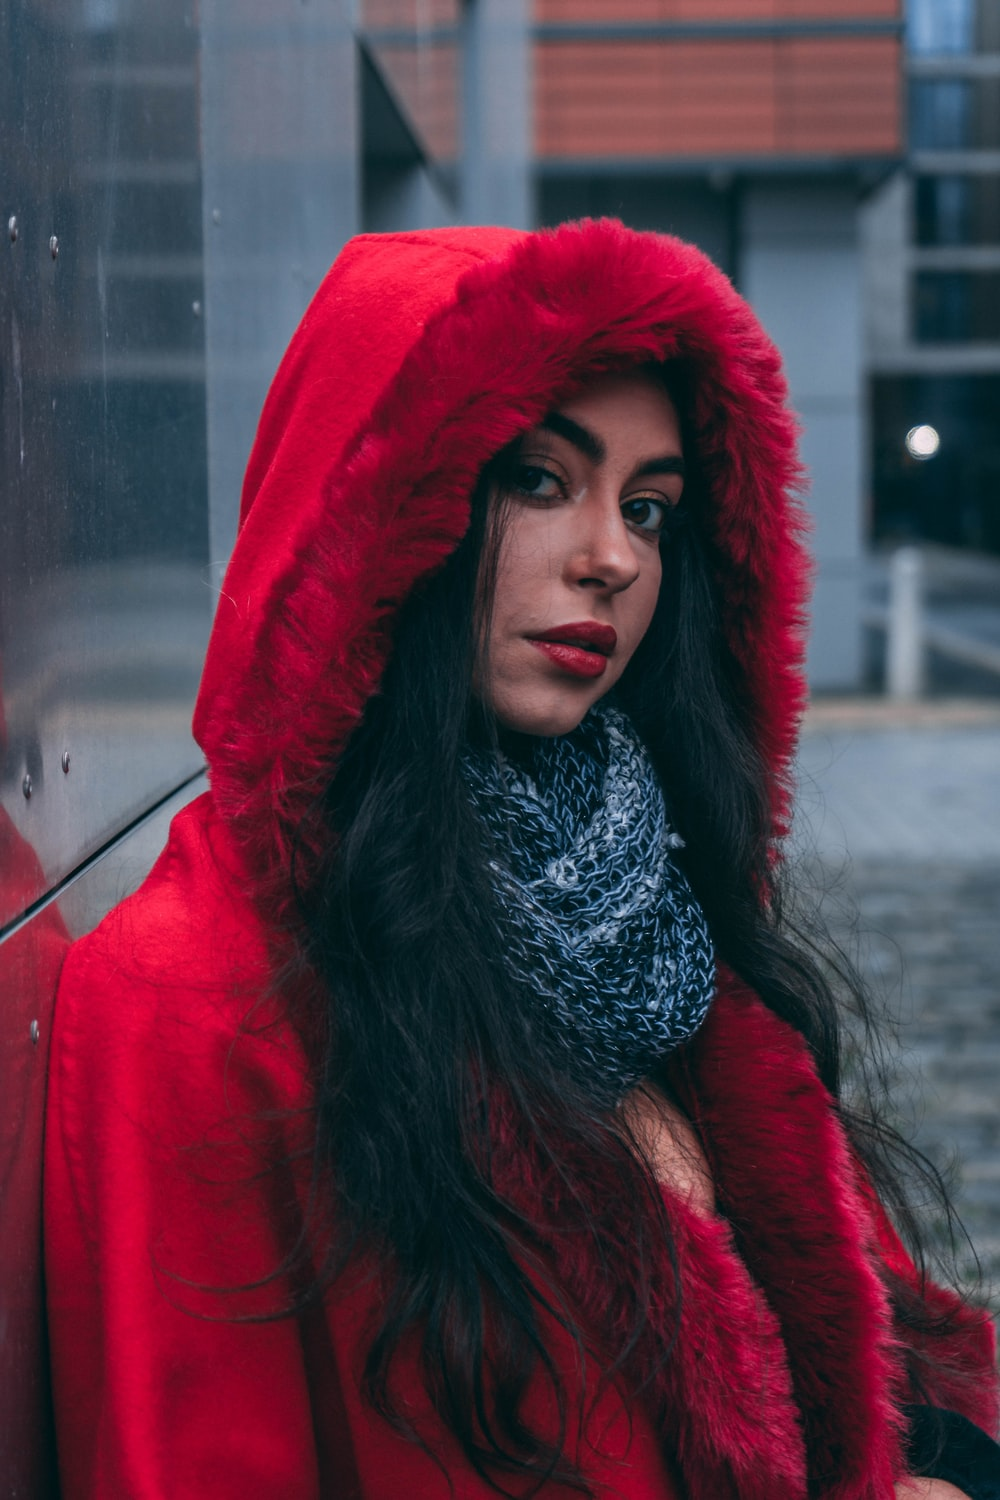 selective focus photography of woman wearing red hoodie